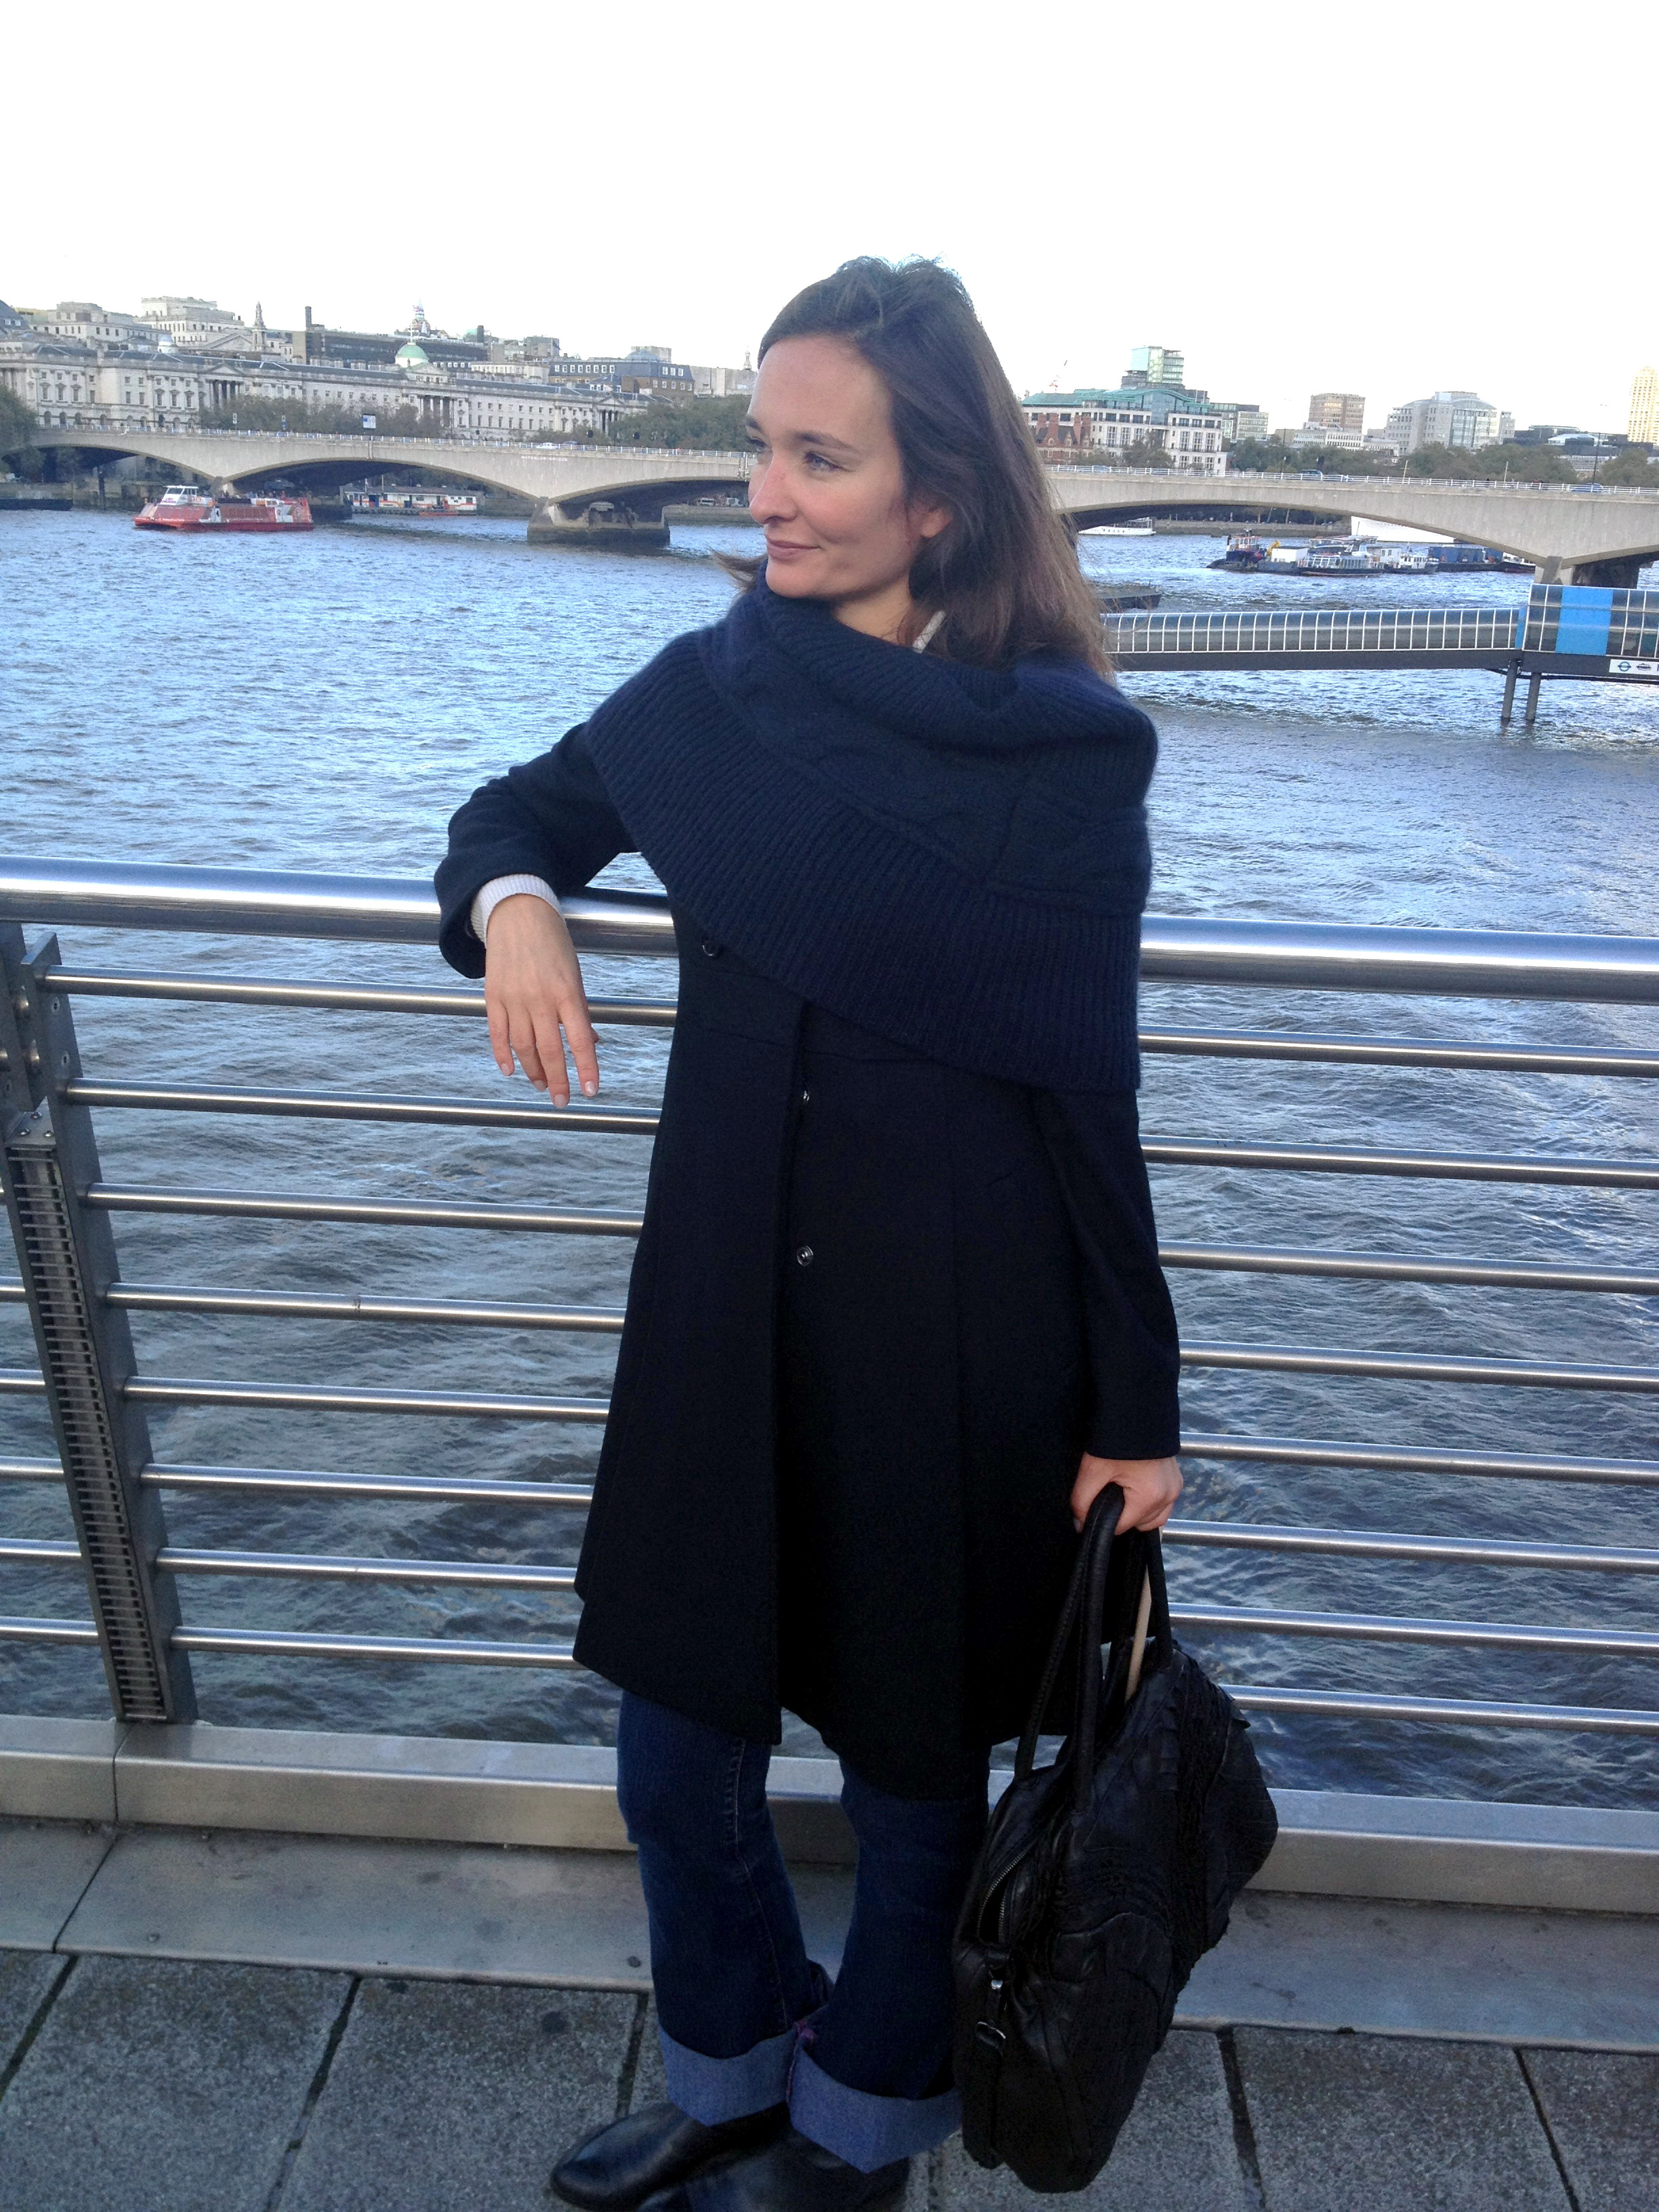 London Street style at the Waterloo Bridge: Black coat from Max & Co